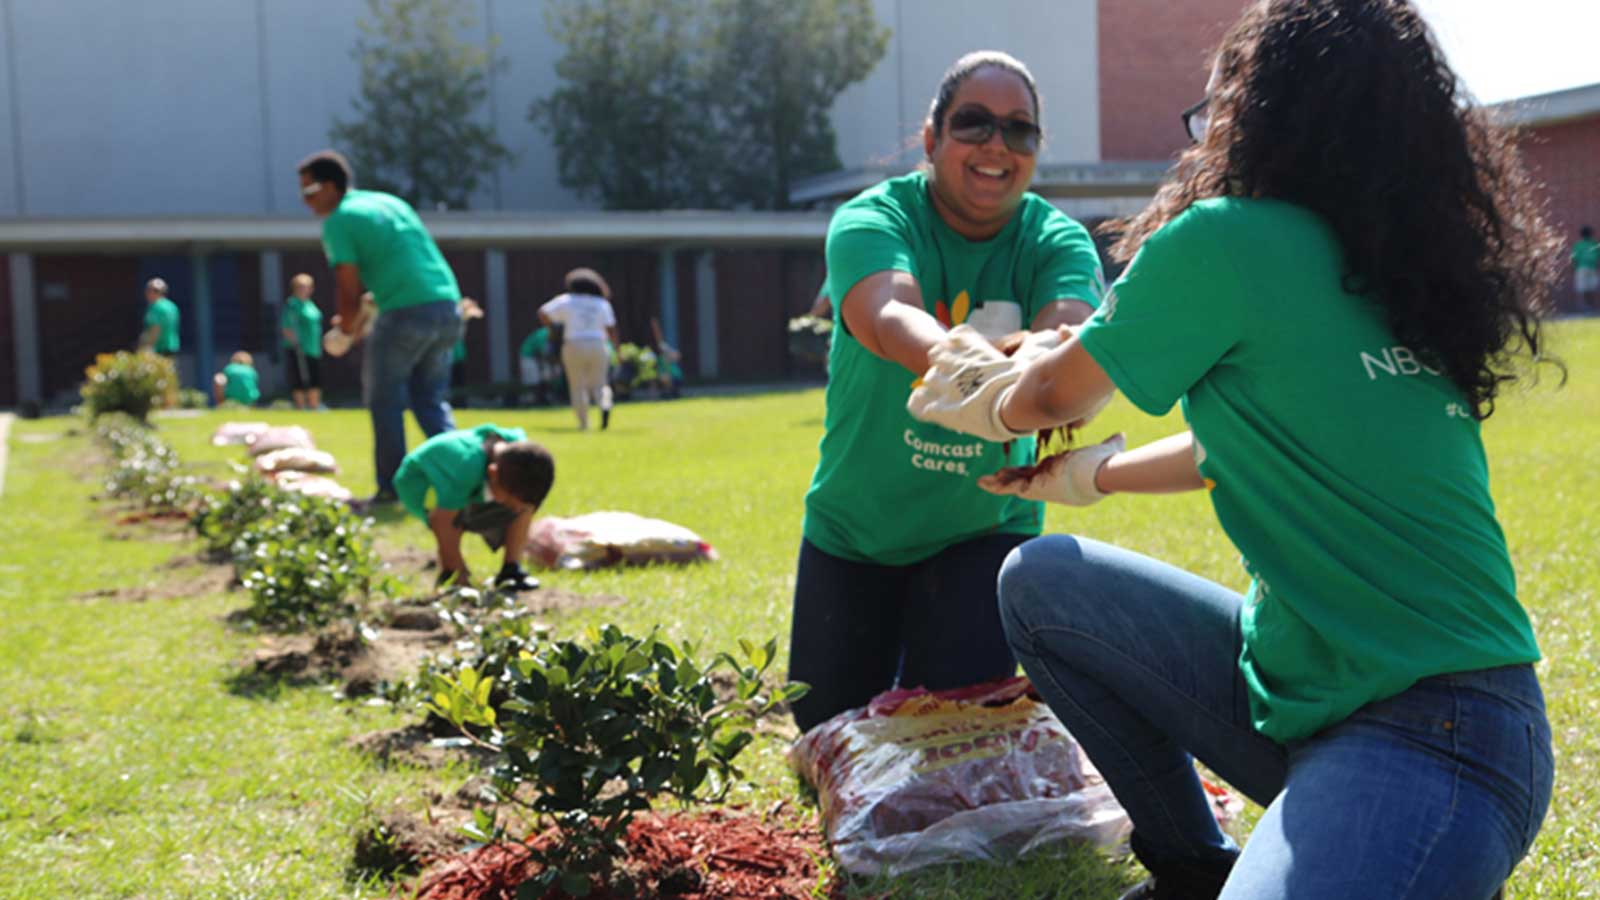 Visit Haven of Peace - Comcast Cares Day hero